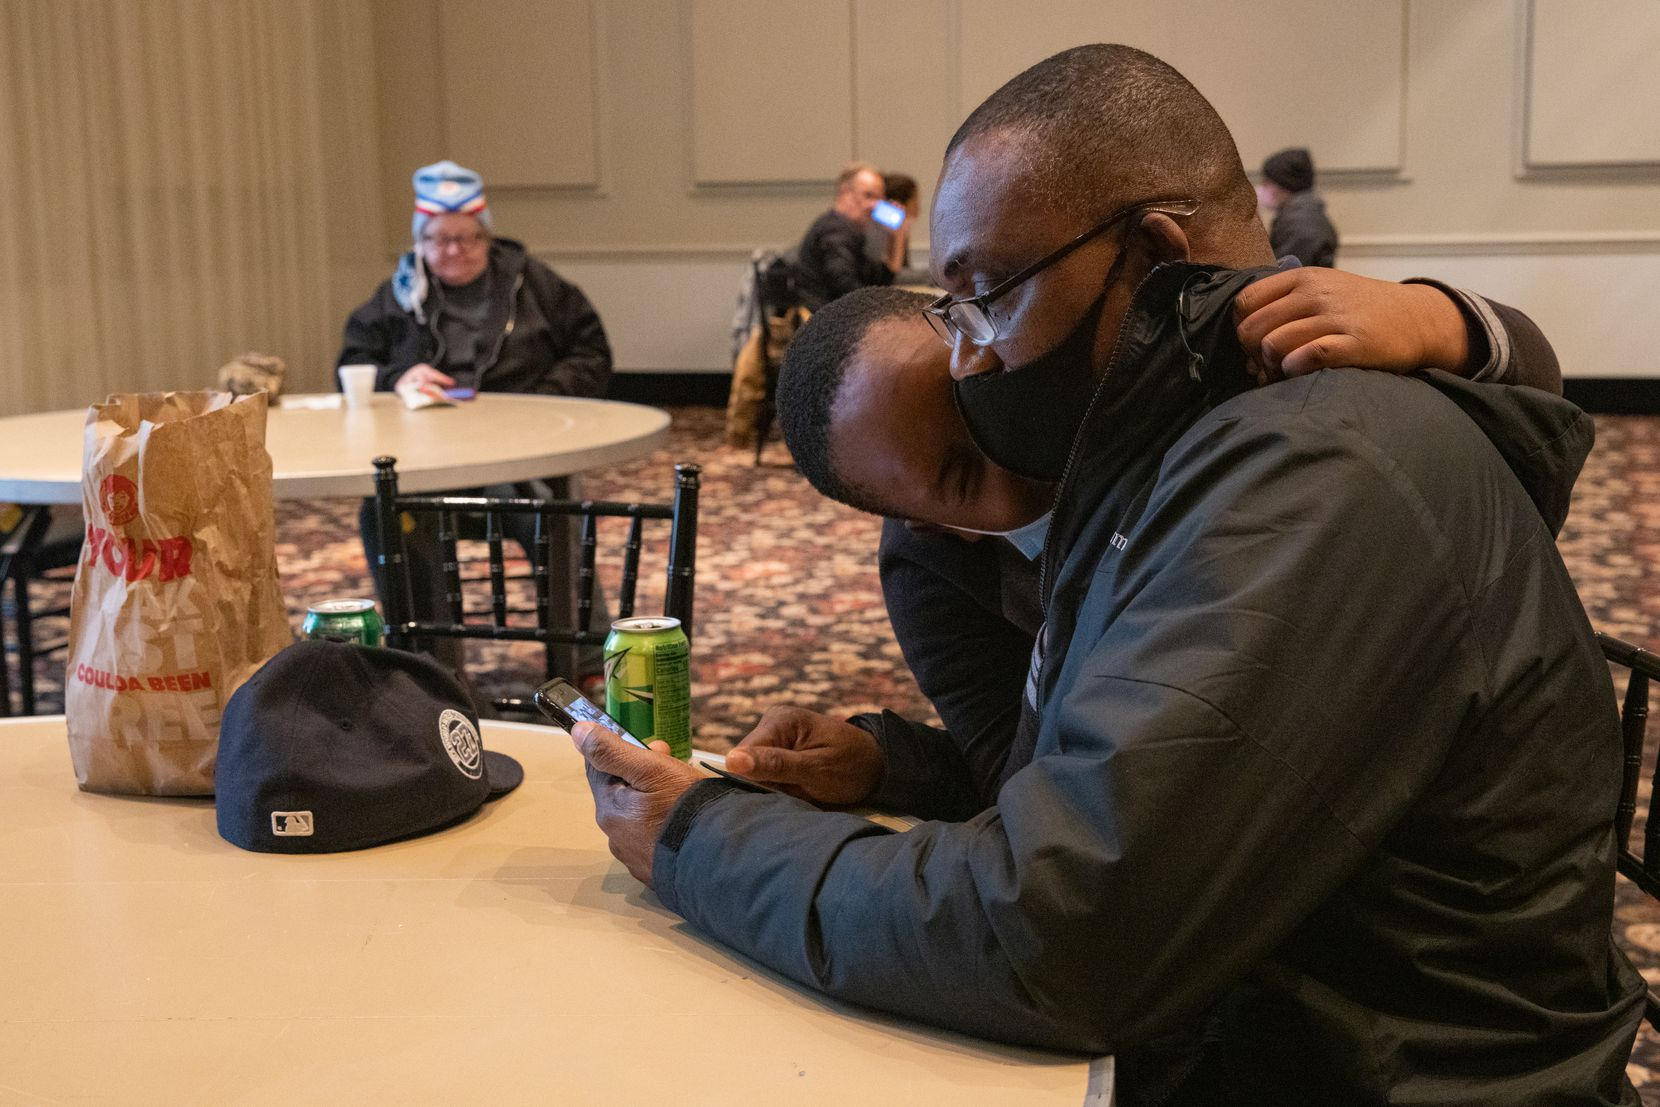 """Chidi Anorue, 8, gives dad Patrick Anorue a hug at the warming center located at Ruthe Jackson Center in Grand Prairie. The Anorues came to the center yesterday after their home lost power and were unable to find a hotel. """"Thank God we have this,"""" Patrick said."""